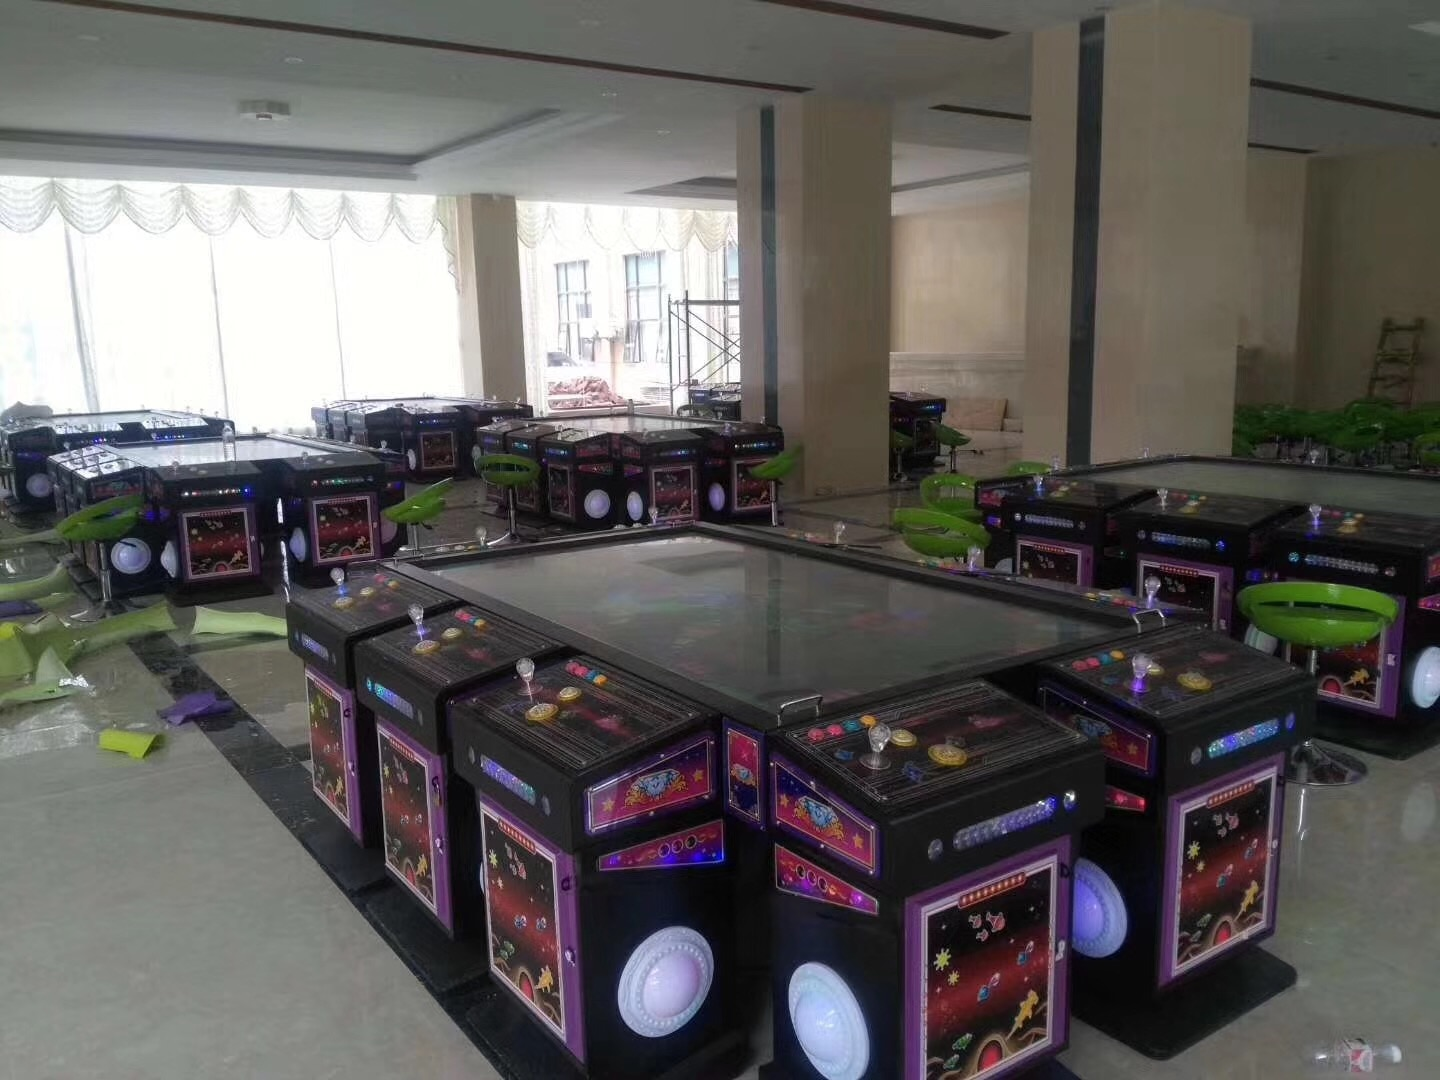 Fish Arcade Tables Parts Wireless Arcade 8P Control Table Console Set with Joystick Buttons SetFish Arcade Tables Parts Wireless Arcade 8P Control Table Console Set with Joystick Buttons Setfish arcade tables parts